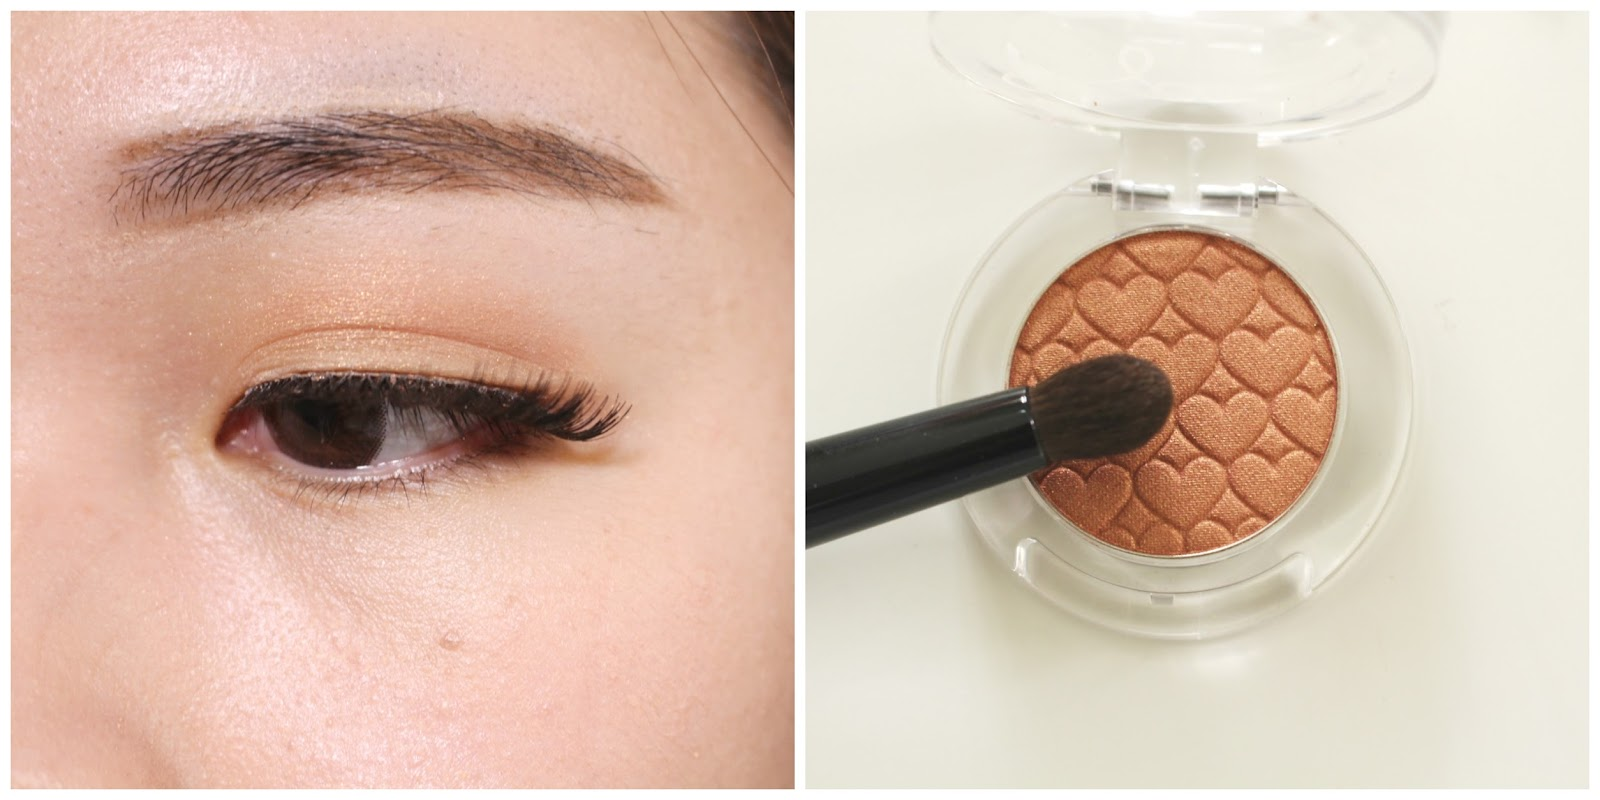 Stayoung etude house look at my eyes review all over my eyelid pk007 baditri Gallery